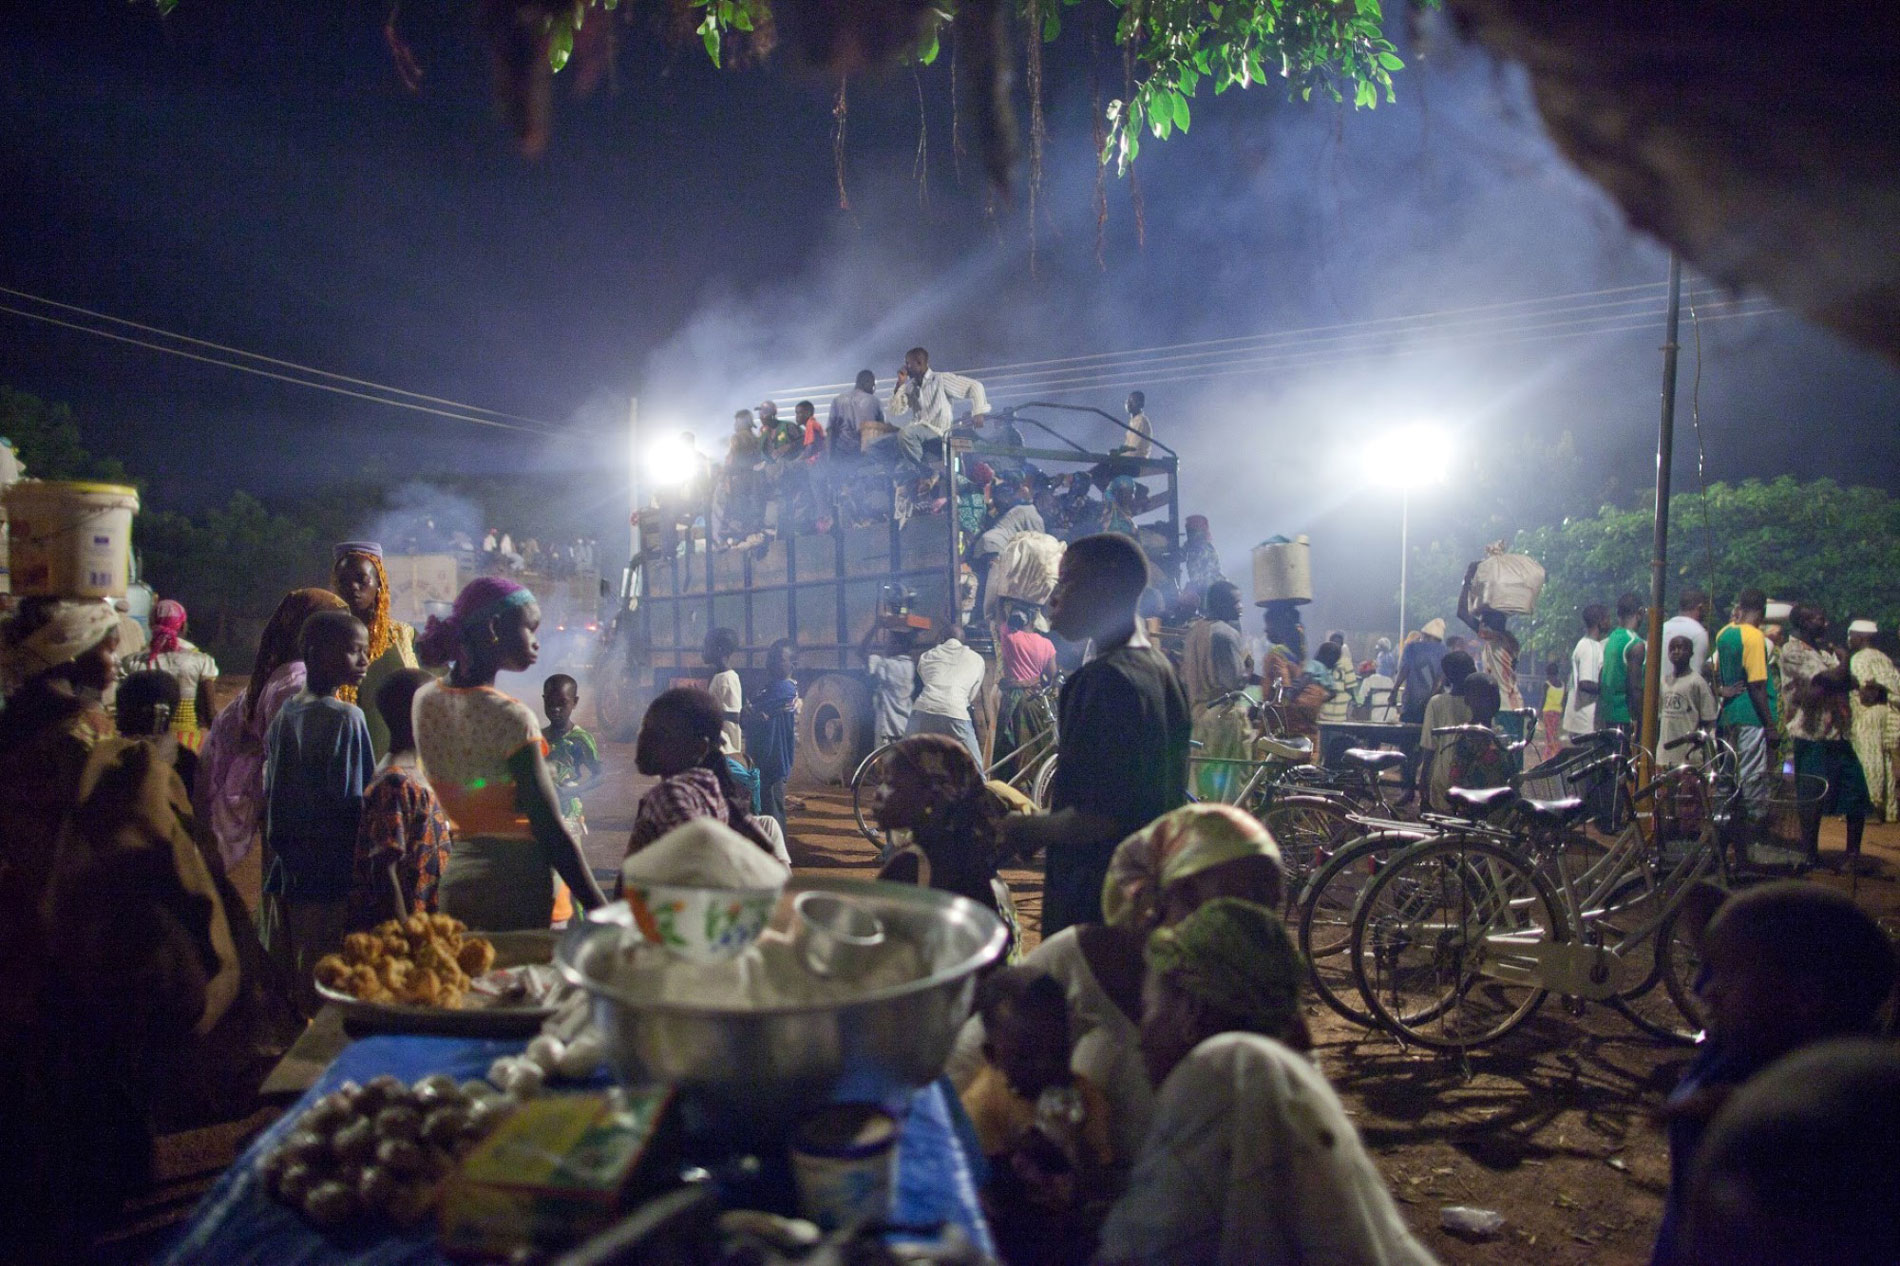 African village with lights | Makmende media